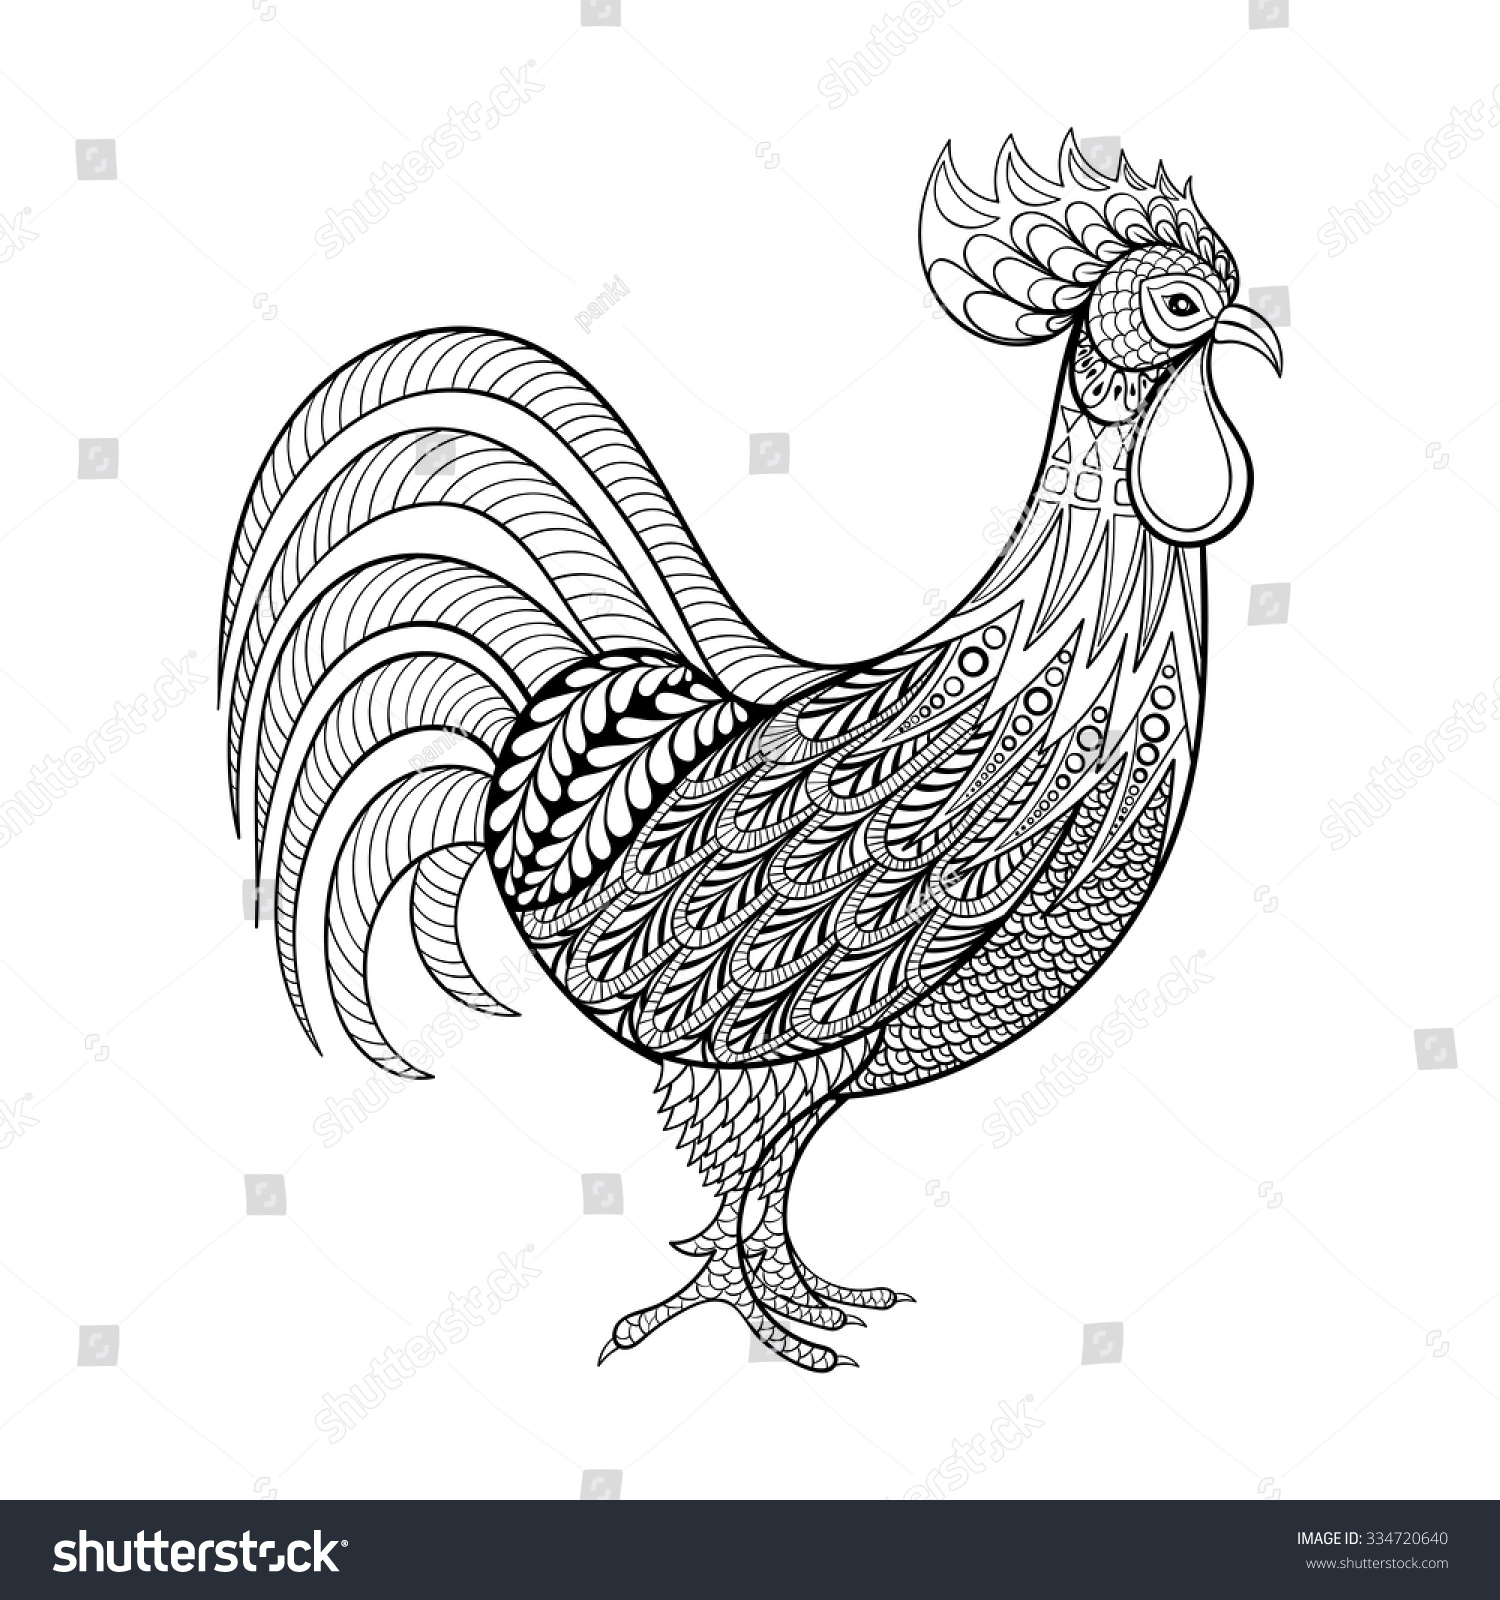 Rooster Chicken Domestic Farmer Bird For Coloring Pages Zentangle Illustration Adult Anti